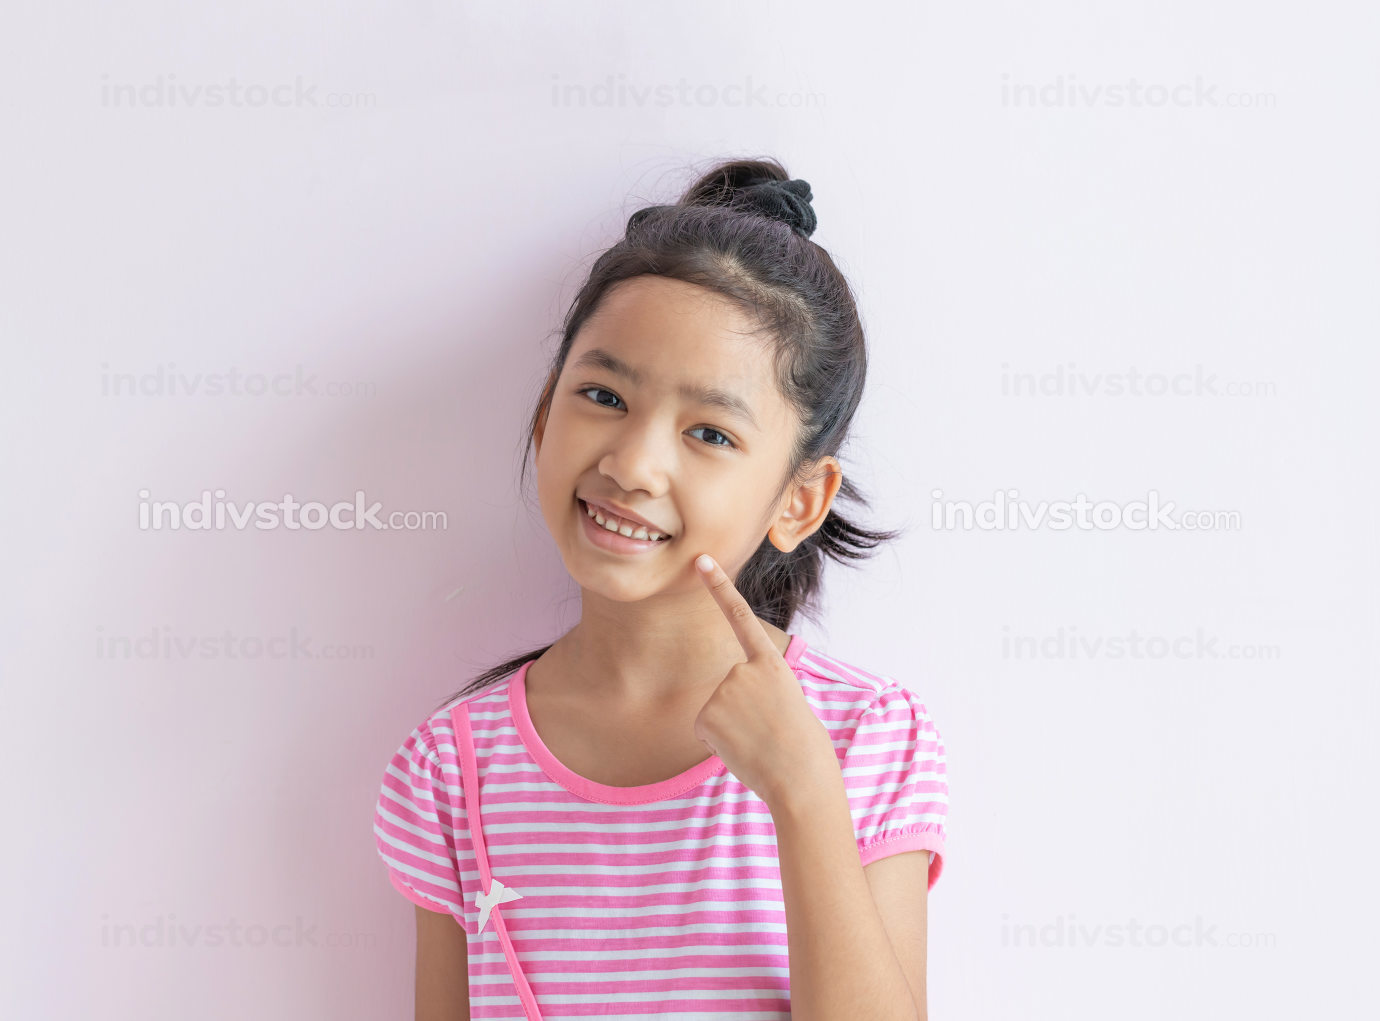 The child with black hair is smiling and pointing to her face.